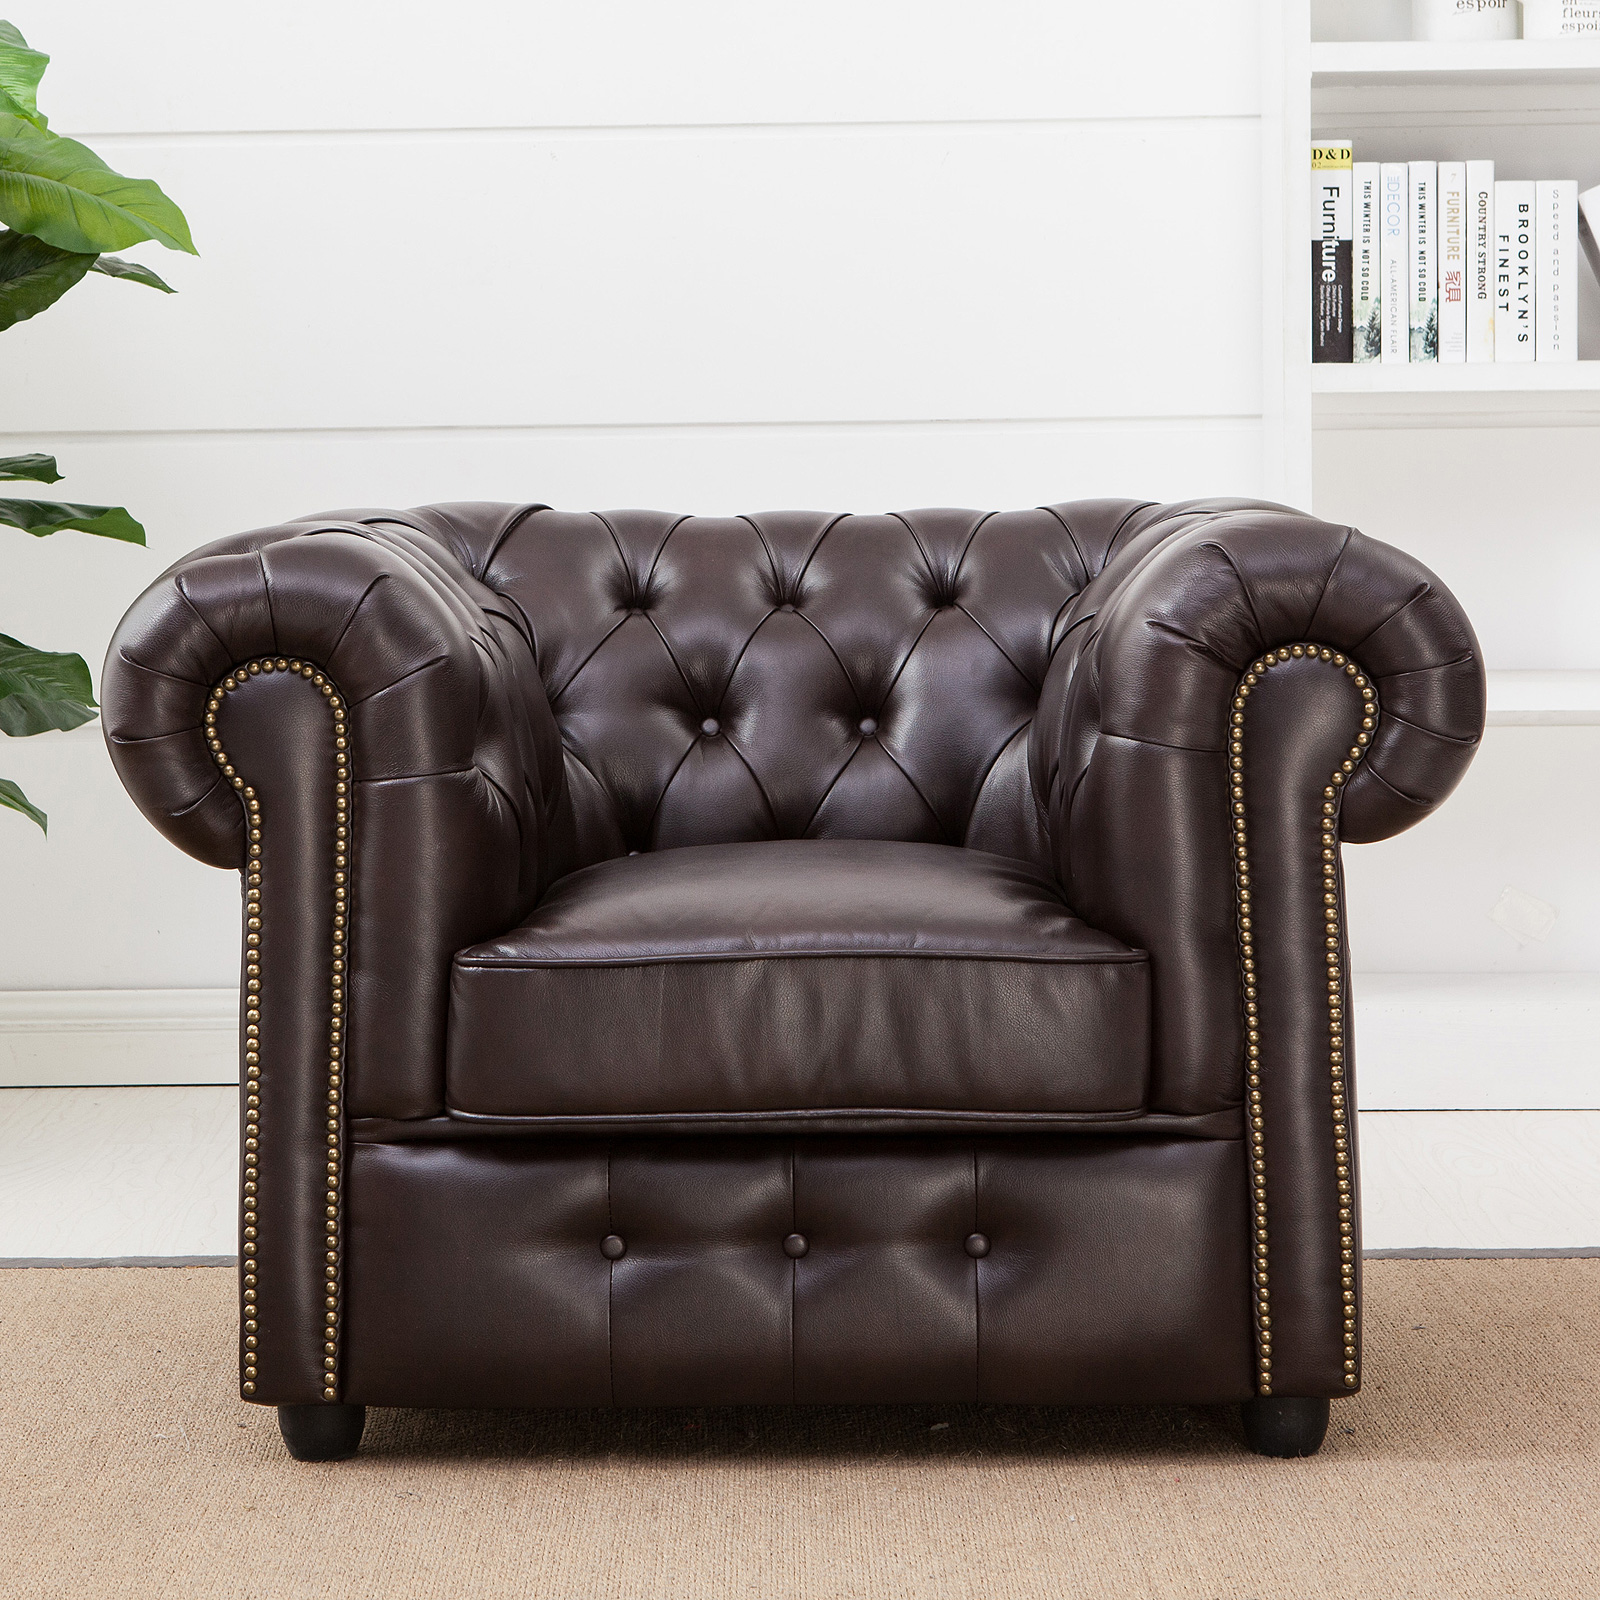 chesterfield polster sofa 2 sitzer 3 sitzer sessel dunkelbraun gl nzend steppung ebay. Black Bedroom Furniture Sets. Home Design Ideas